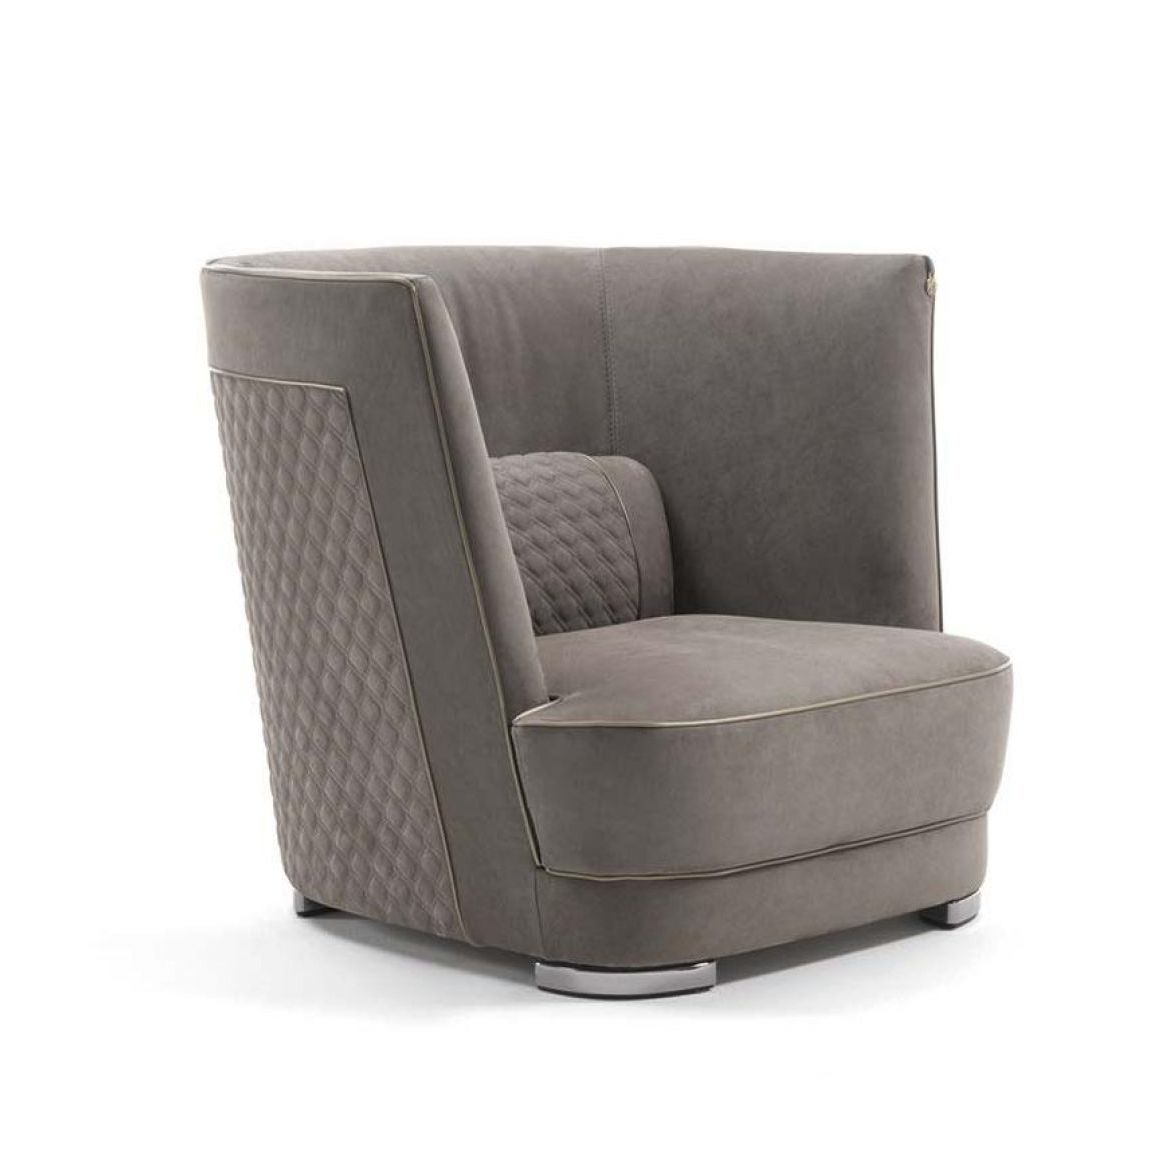 GREPPI High Armchair фото цена